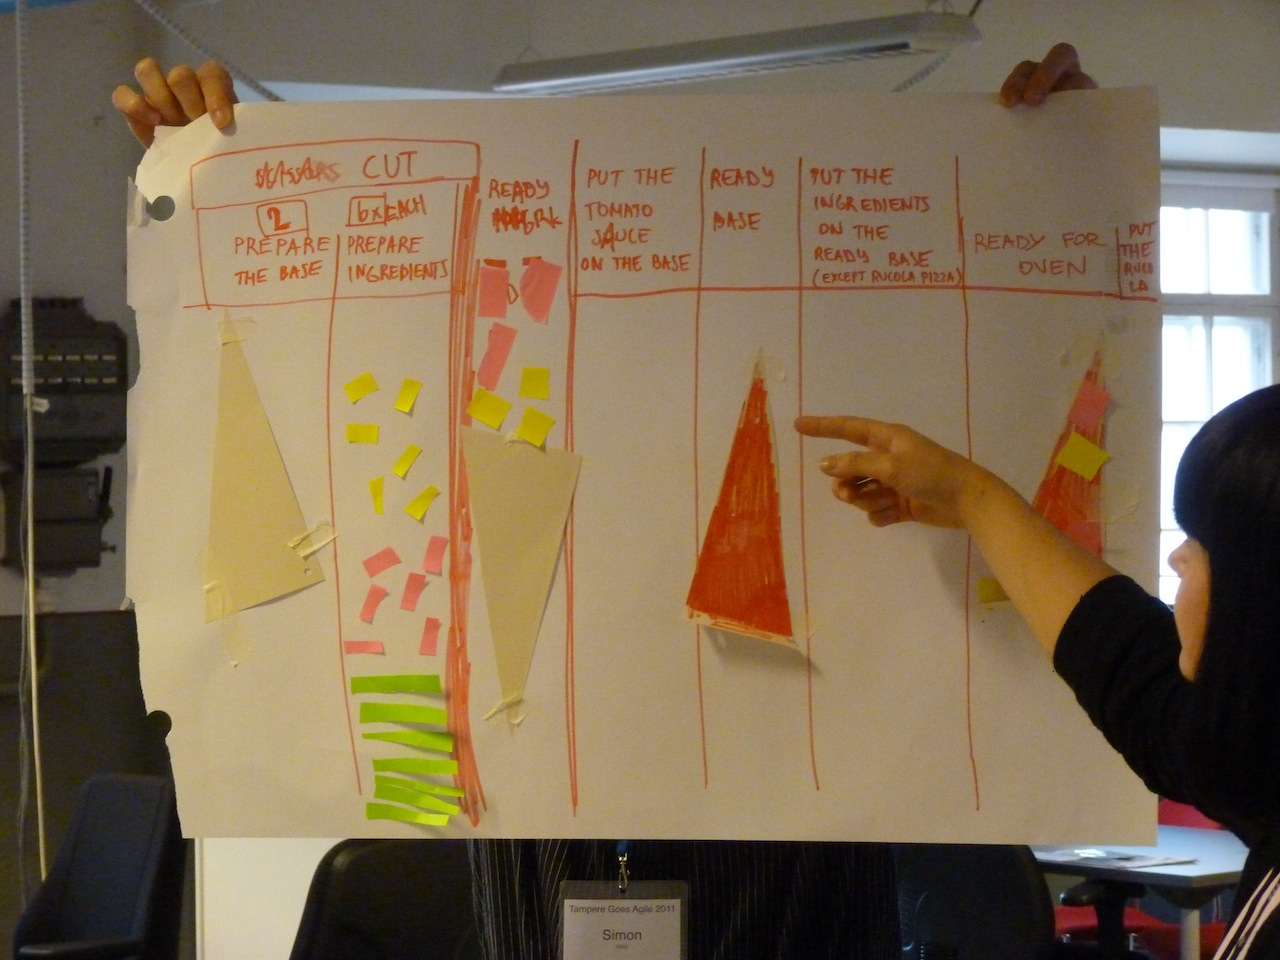 Picture - kpg - visualize on a flipchart.jpg